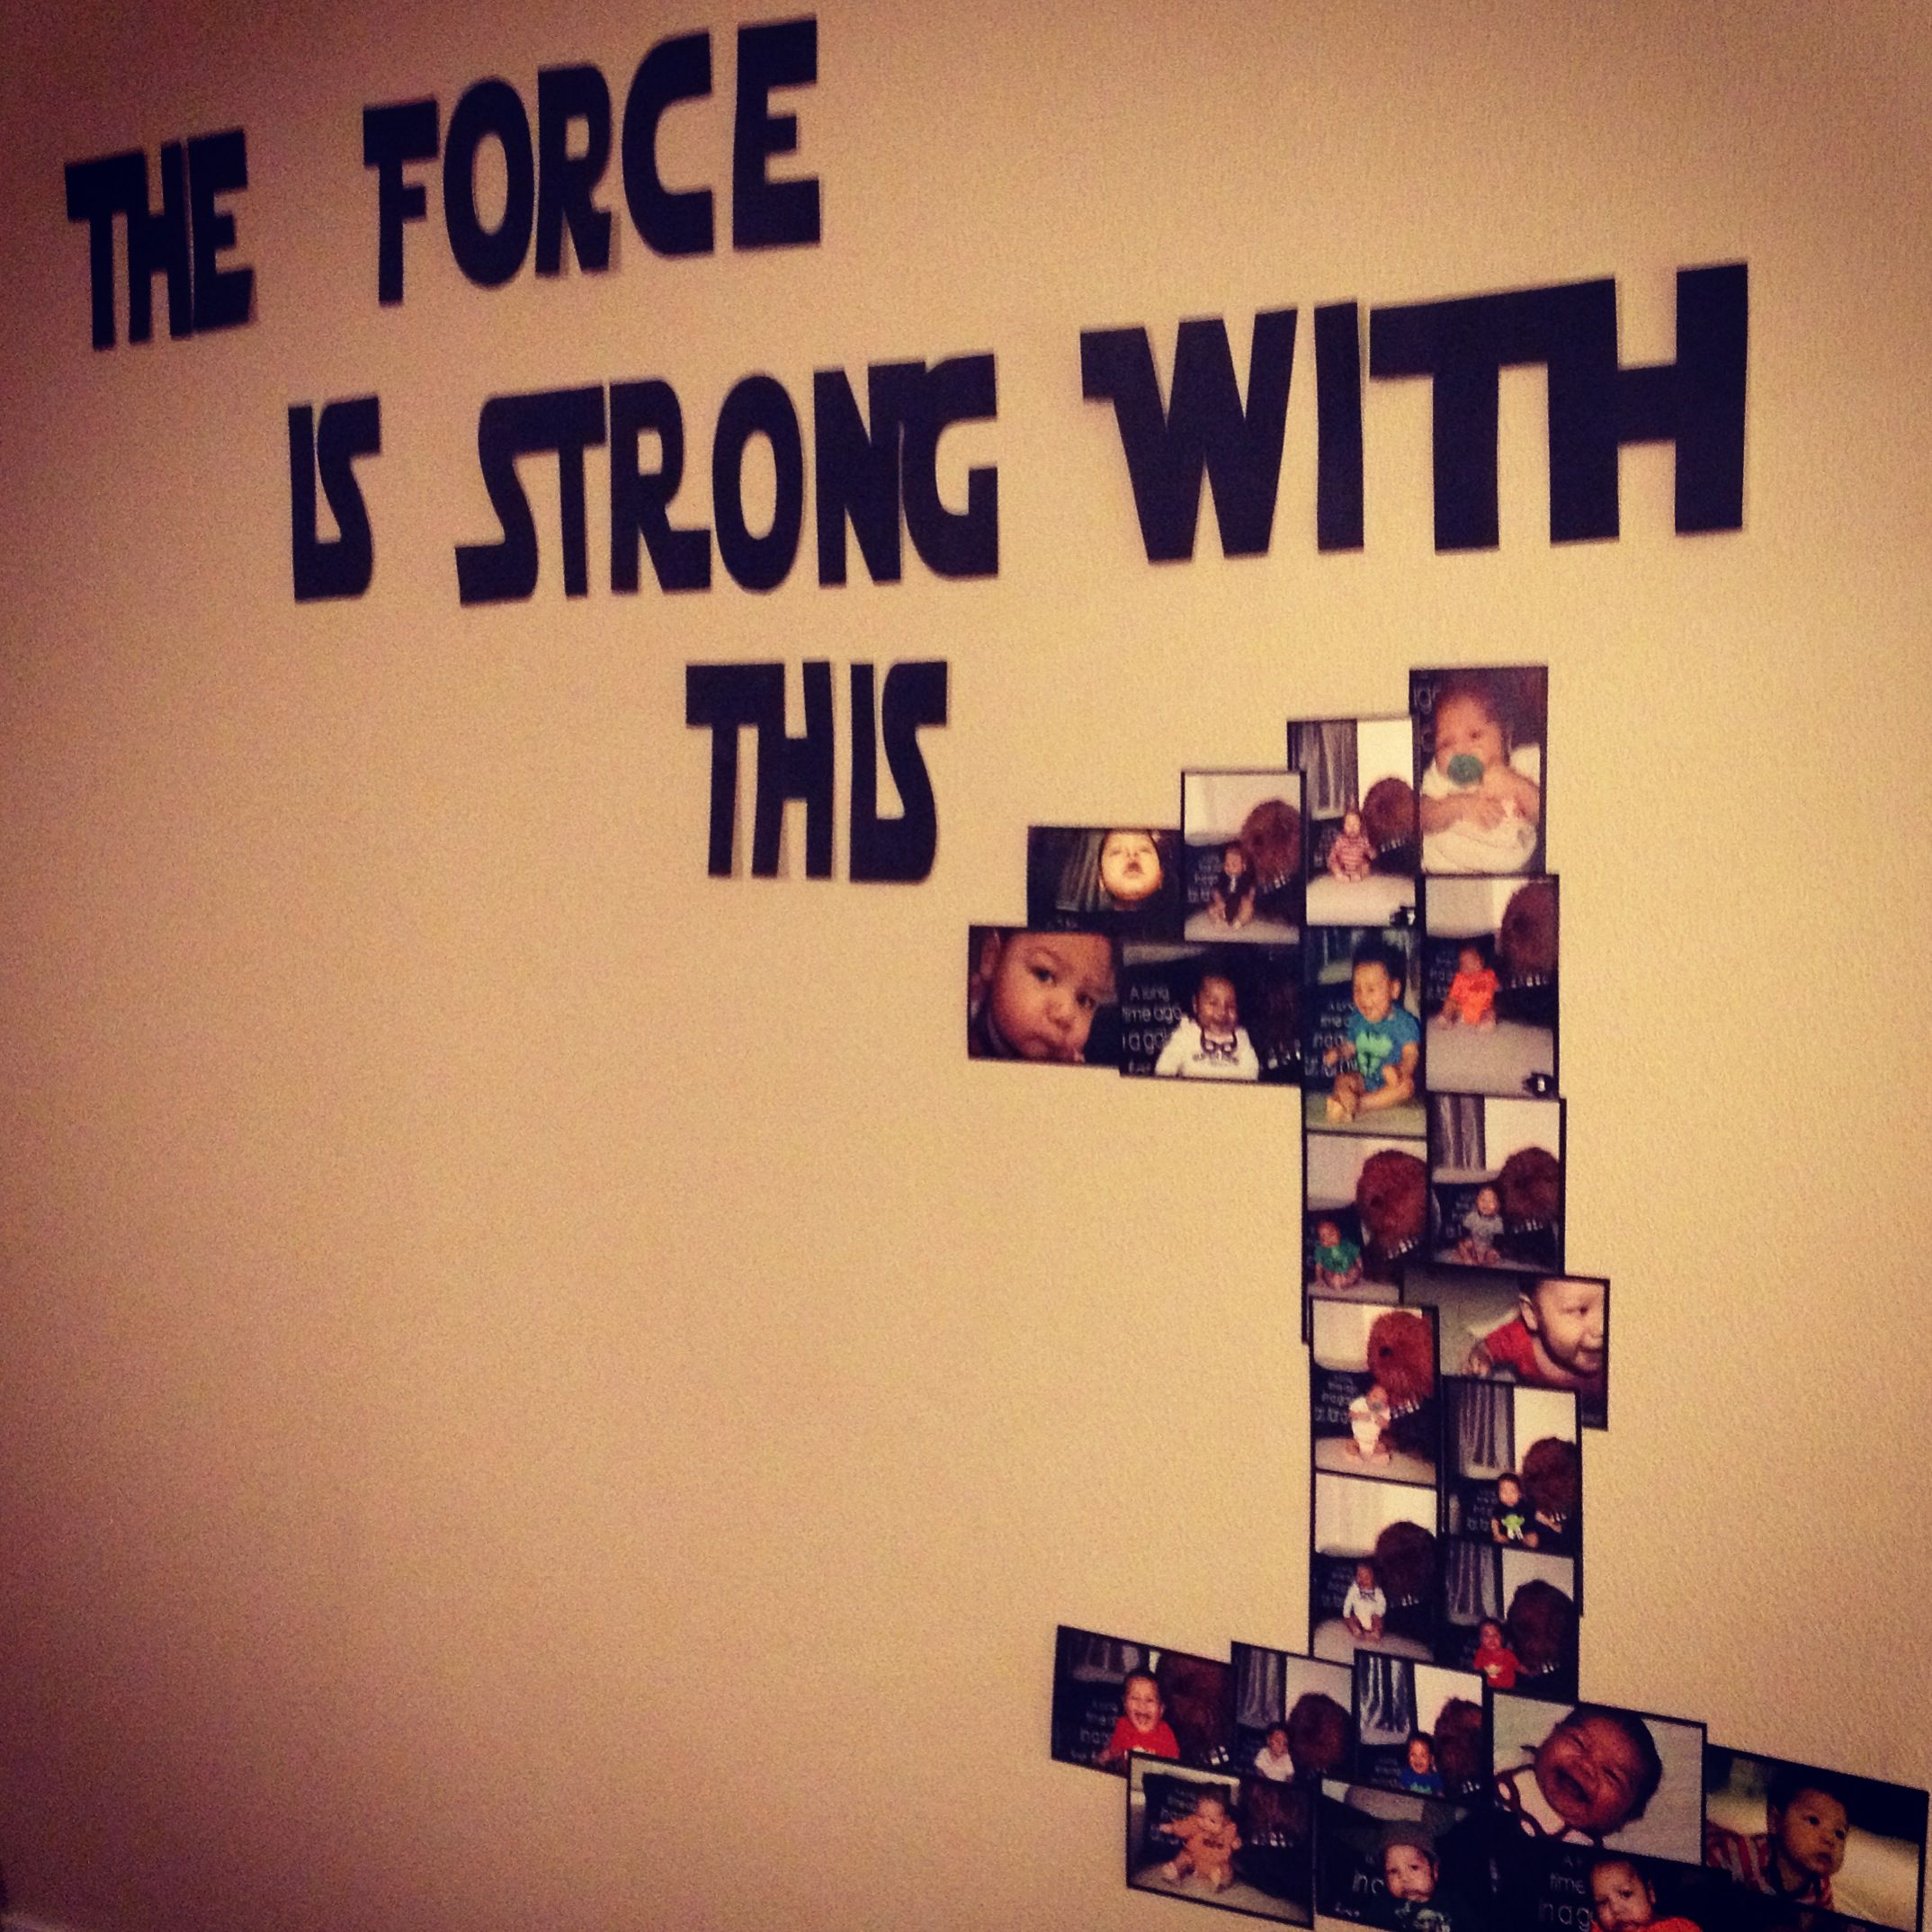 Star Wars Birthday Decor #starwars #birthday #partydecorations